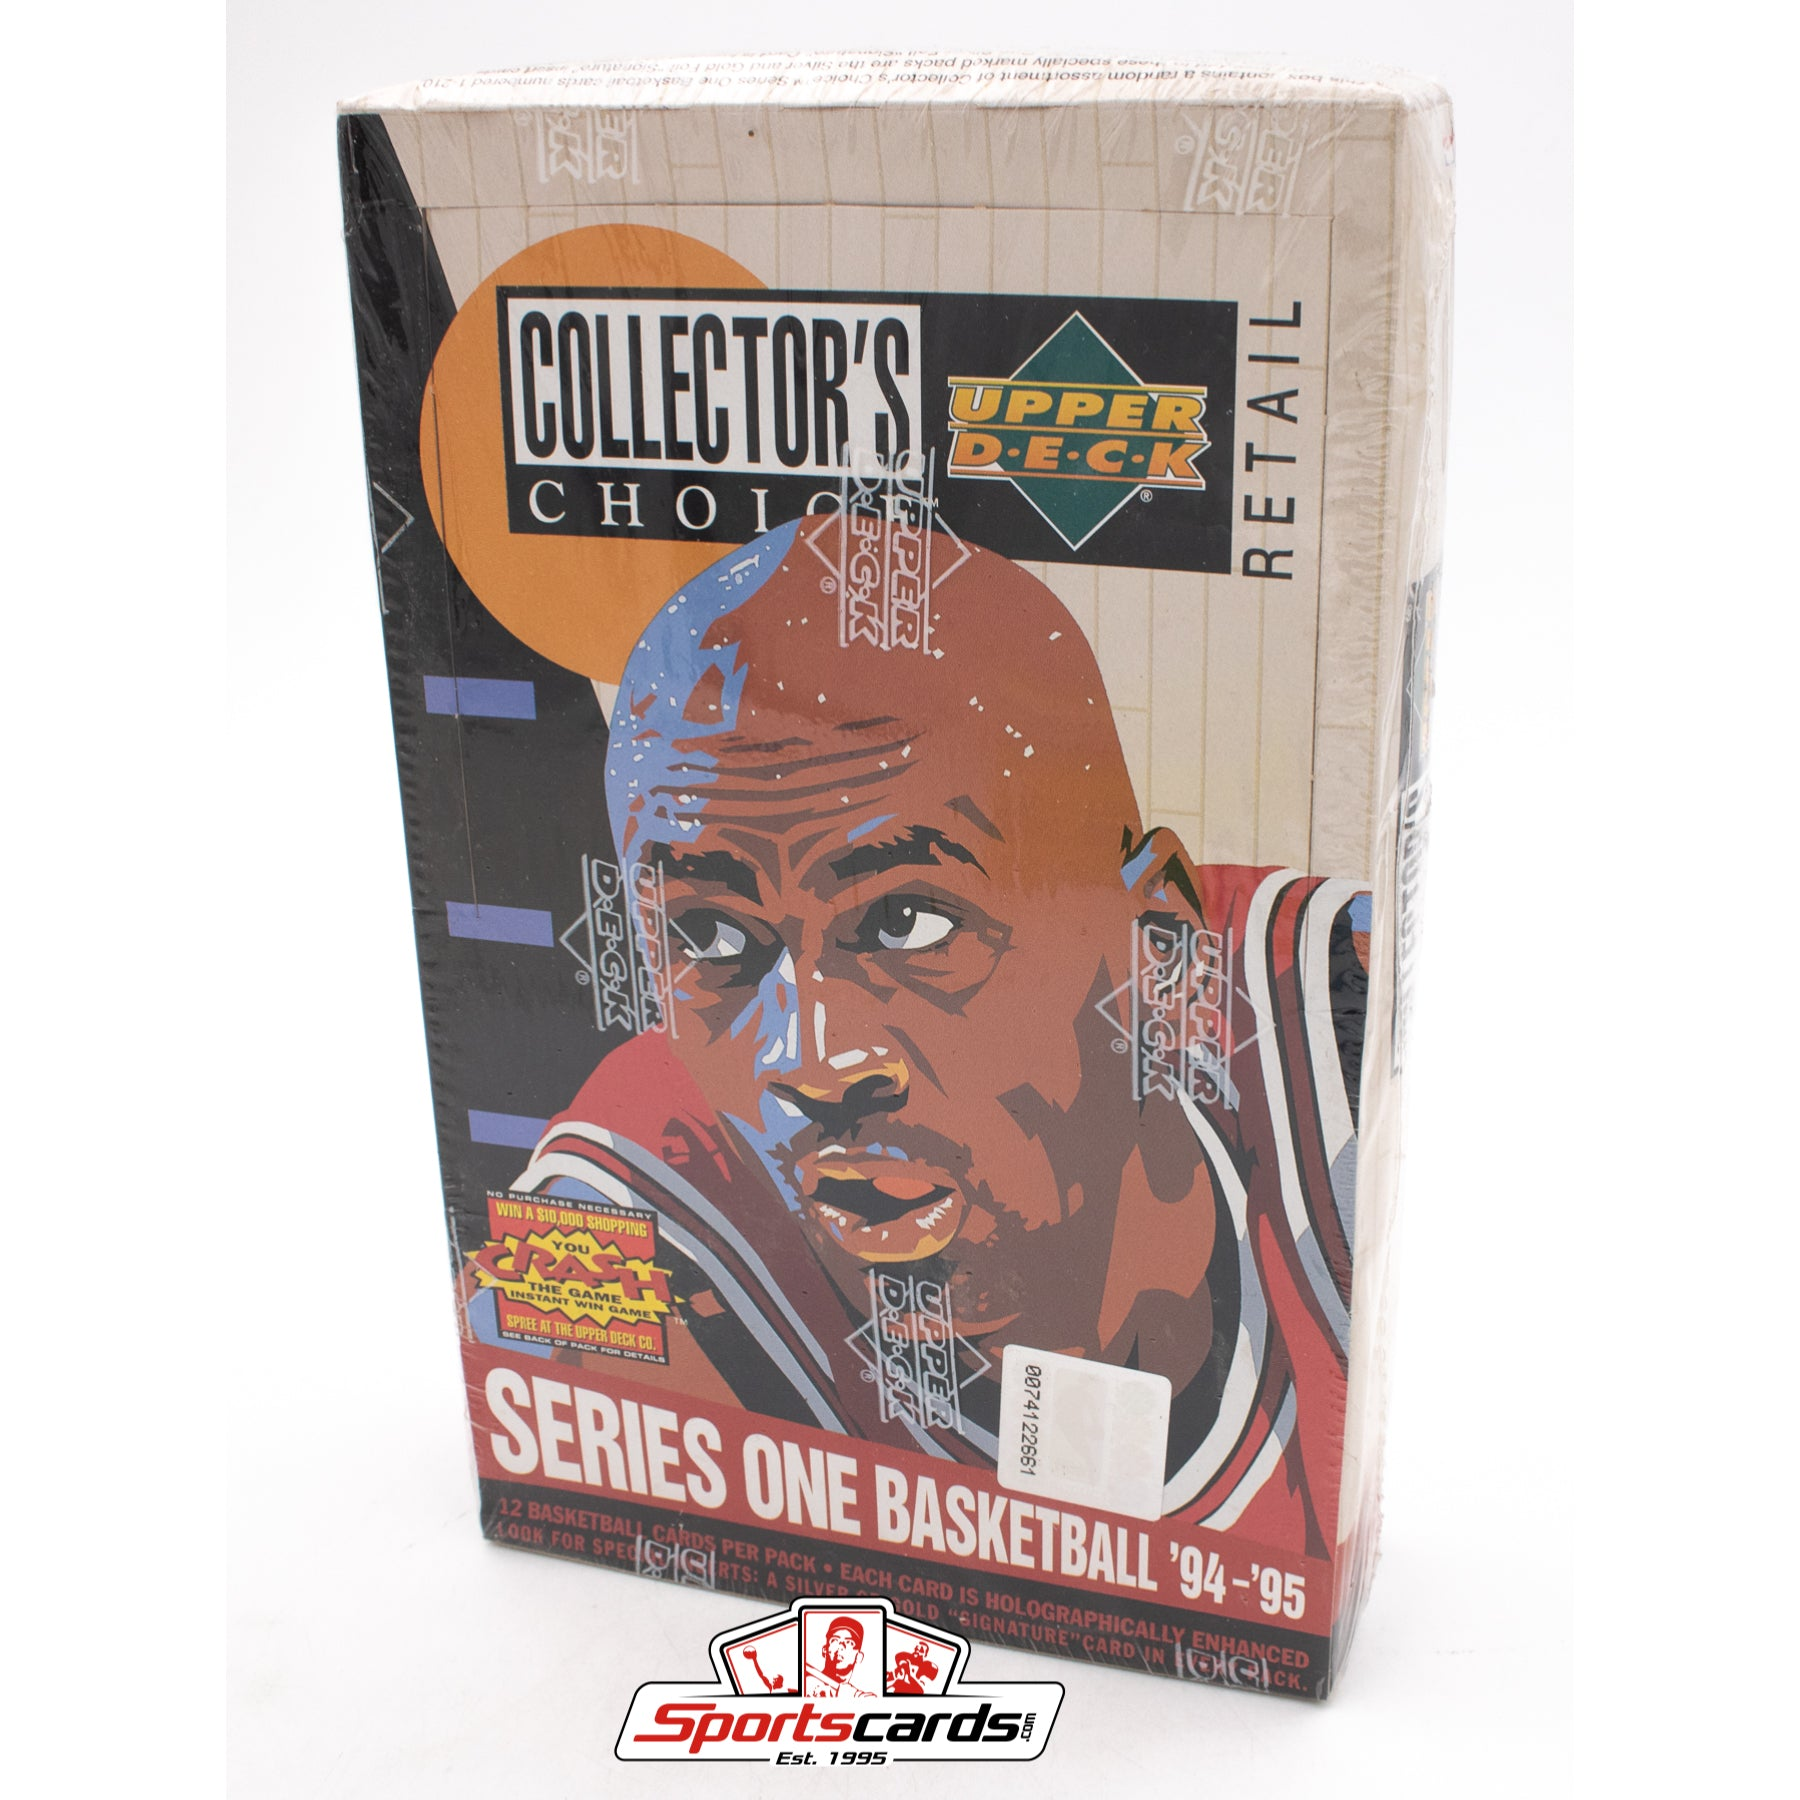 1994-95 Upper Deck Collector's Choice Series 1 Basketball Factory Sealed Retail Box